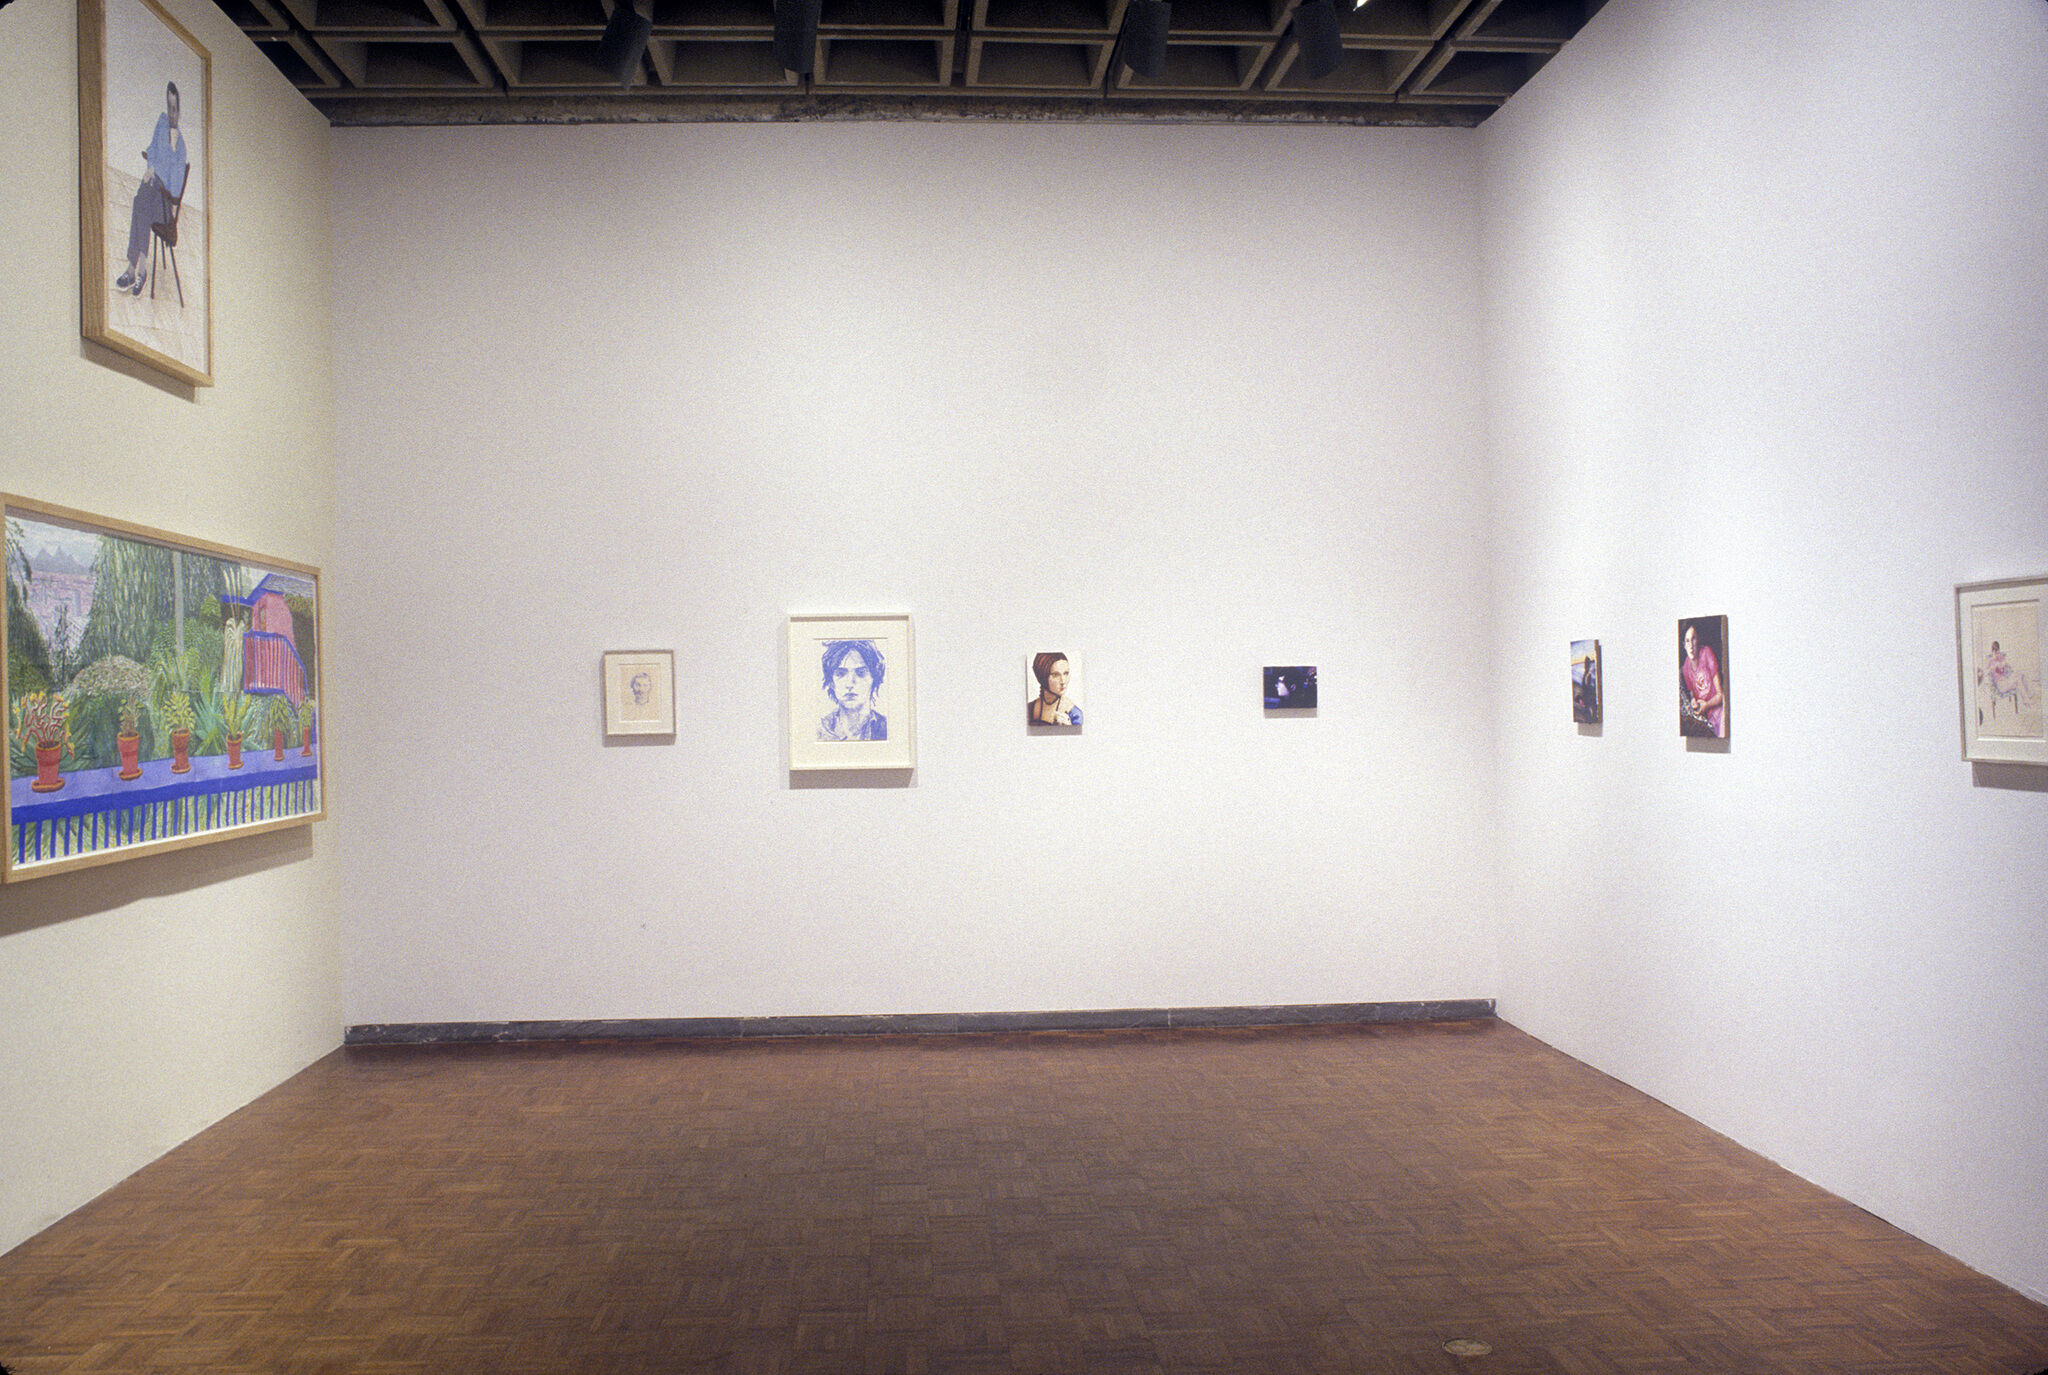 A gallery filled with drawings and paintings.